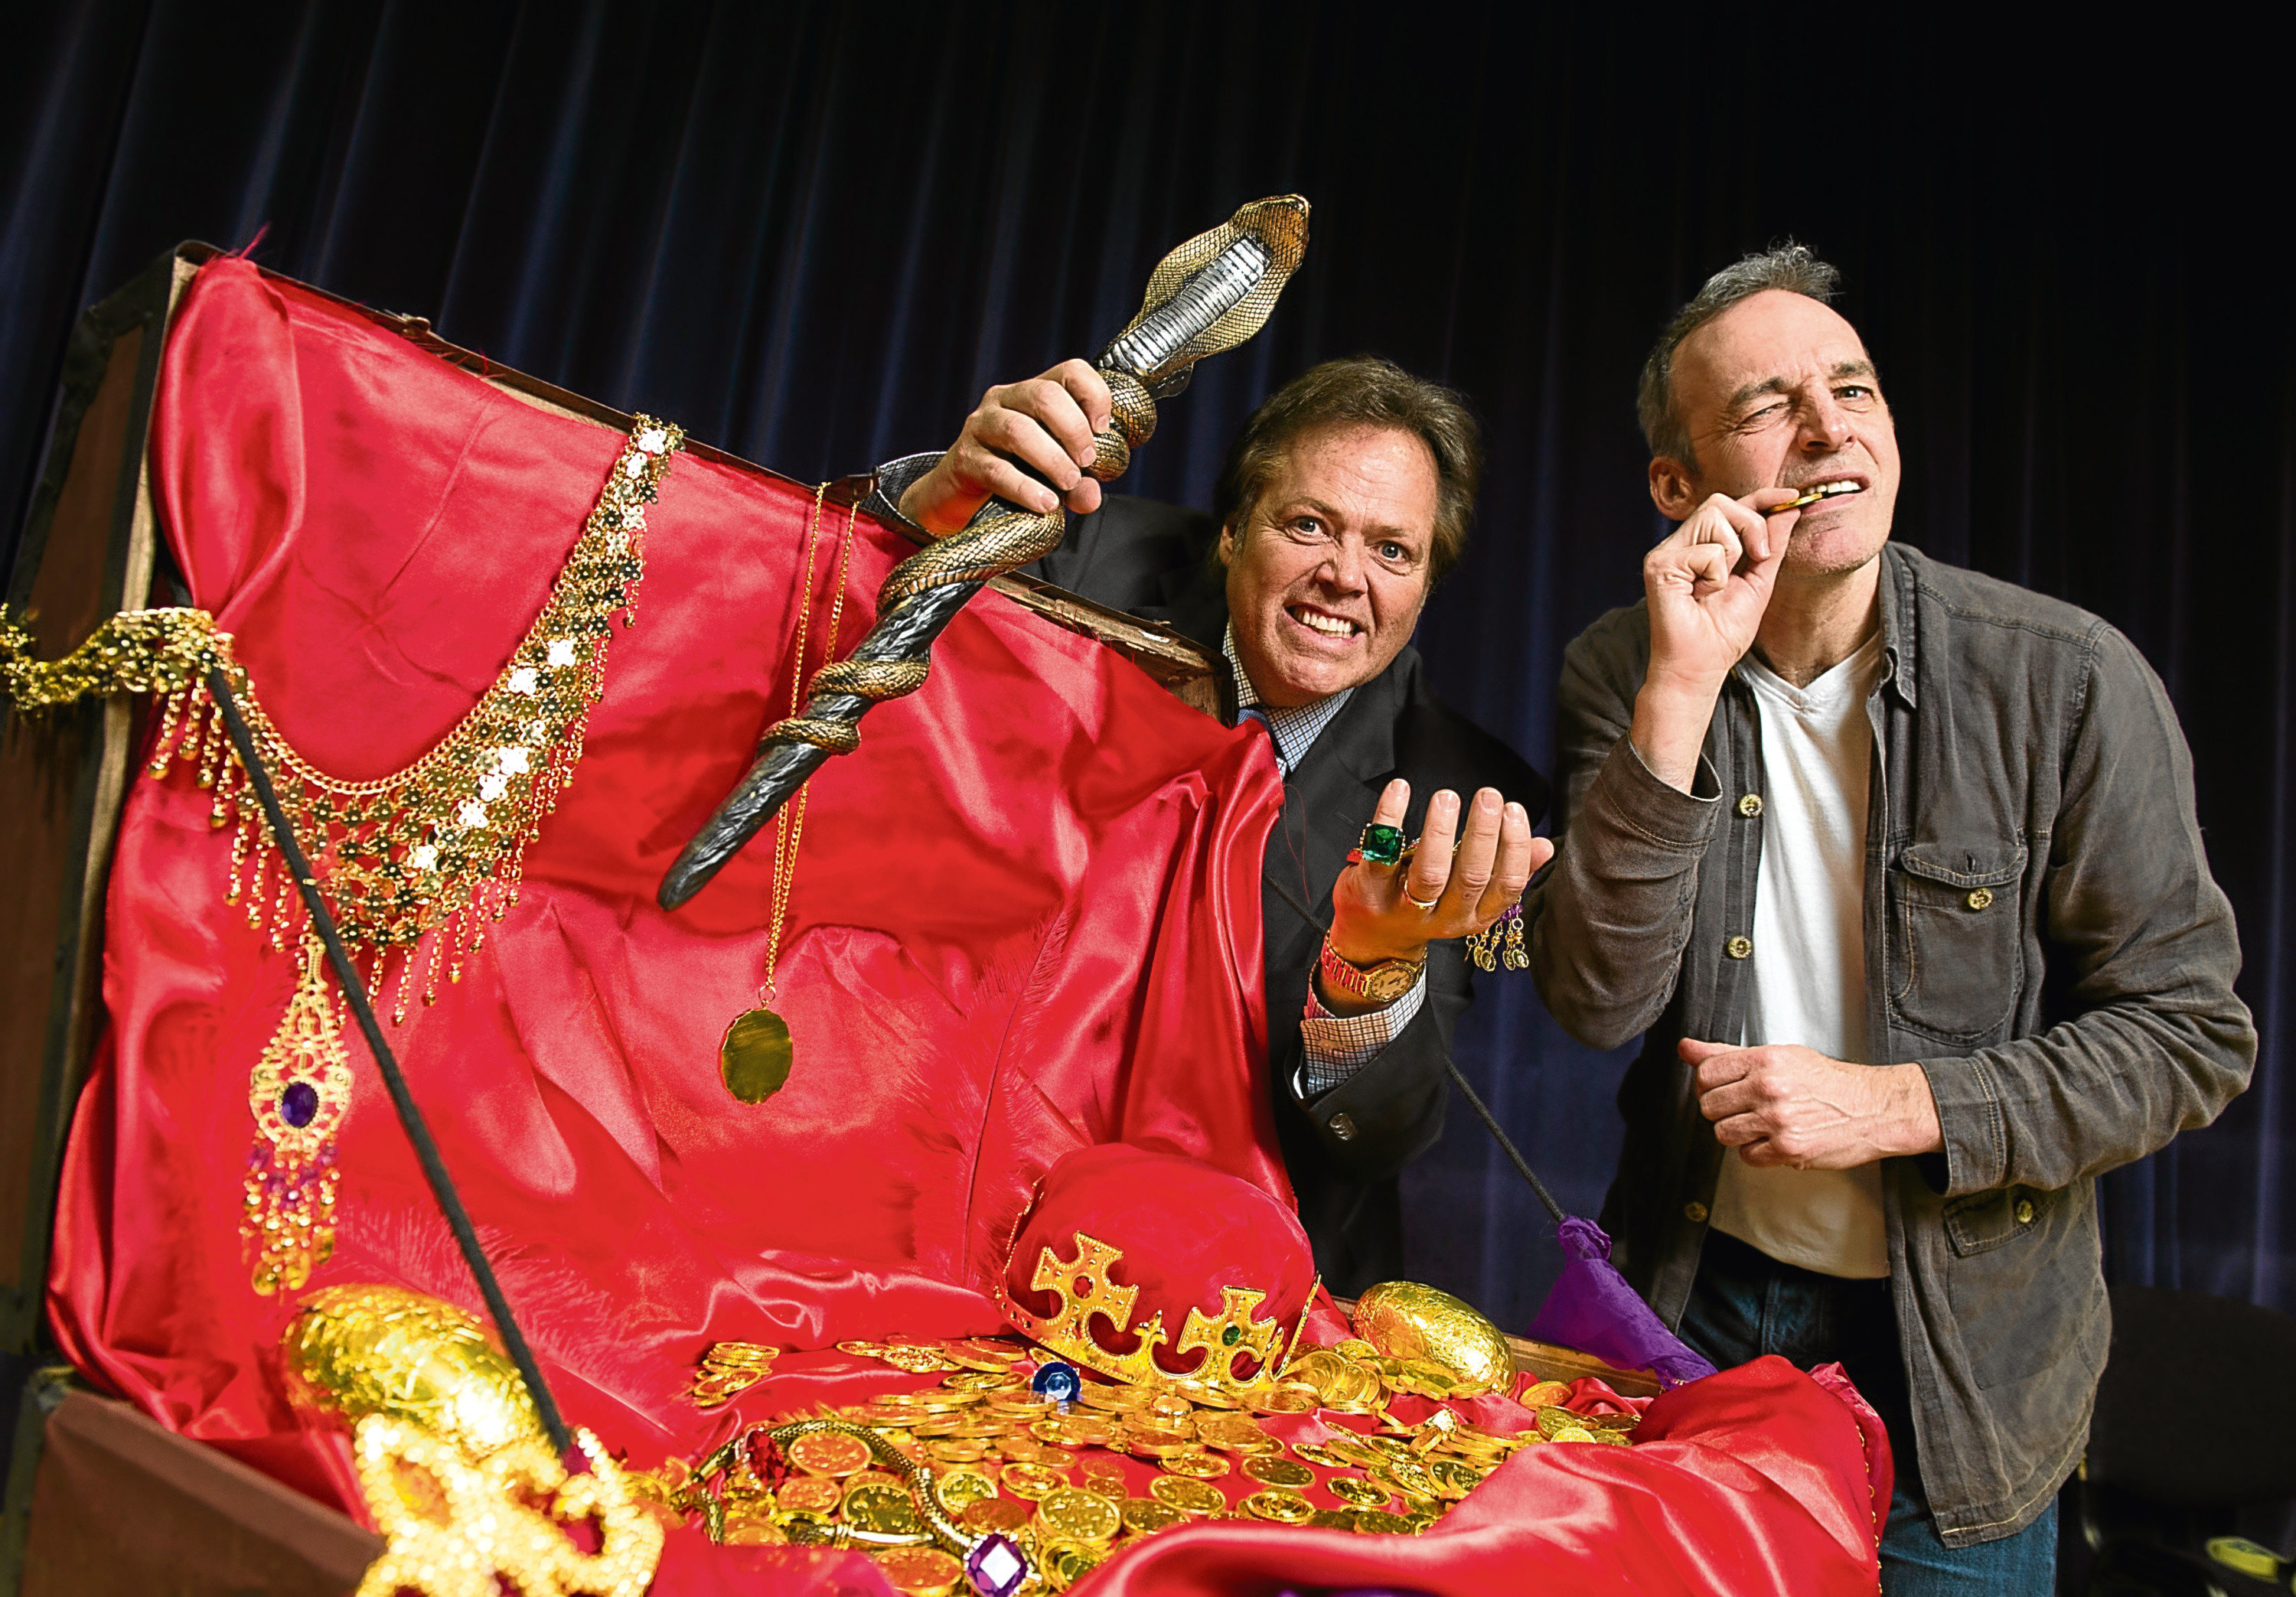 Jimmy Osmond will star in this year's HMT panto